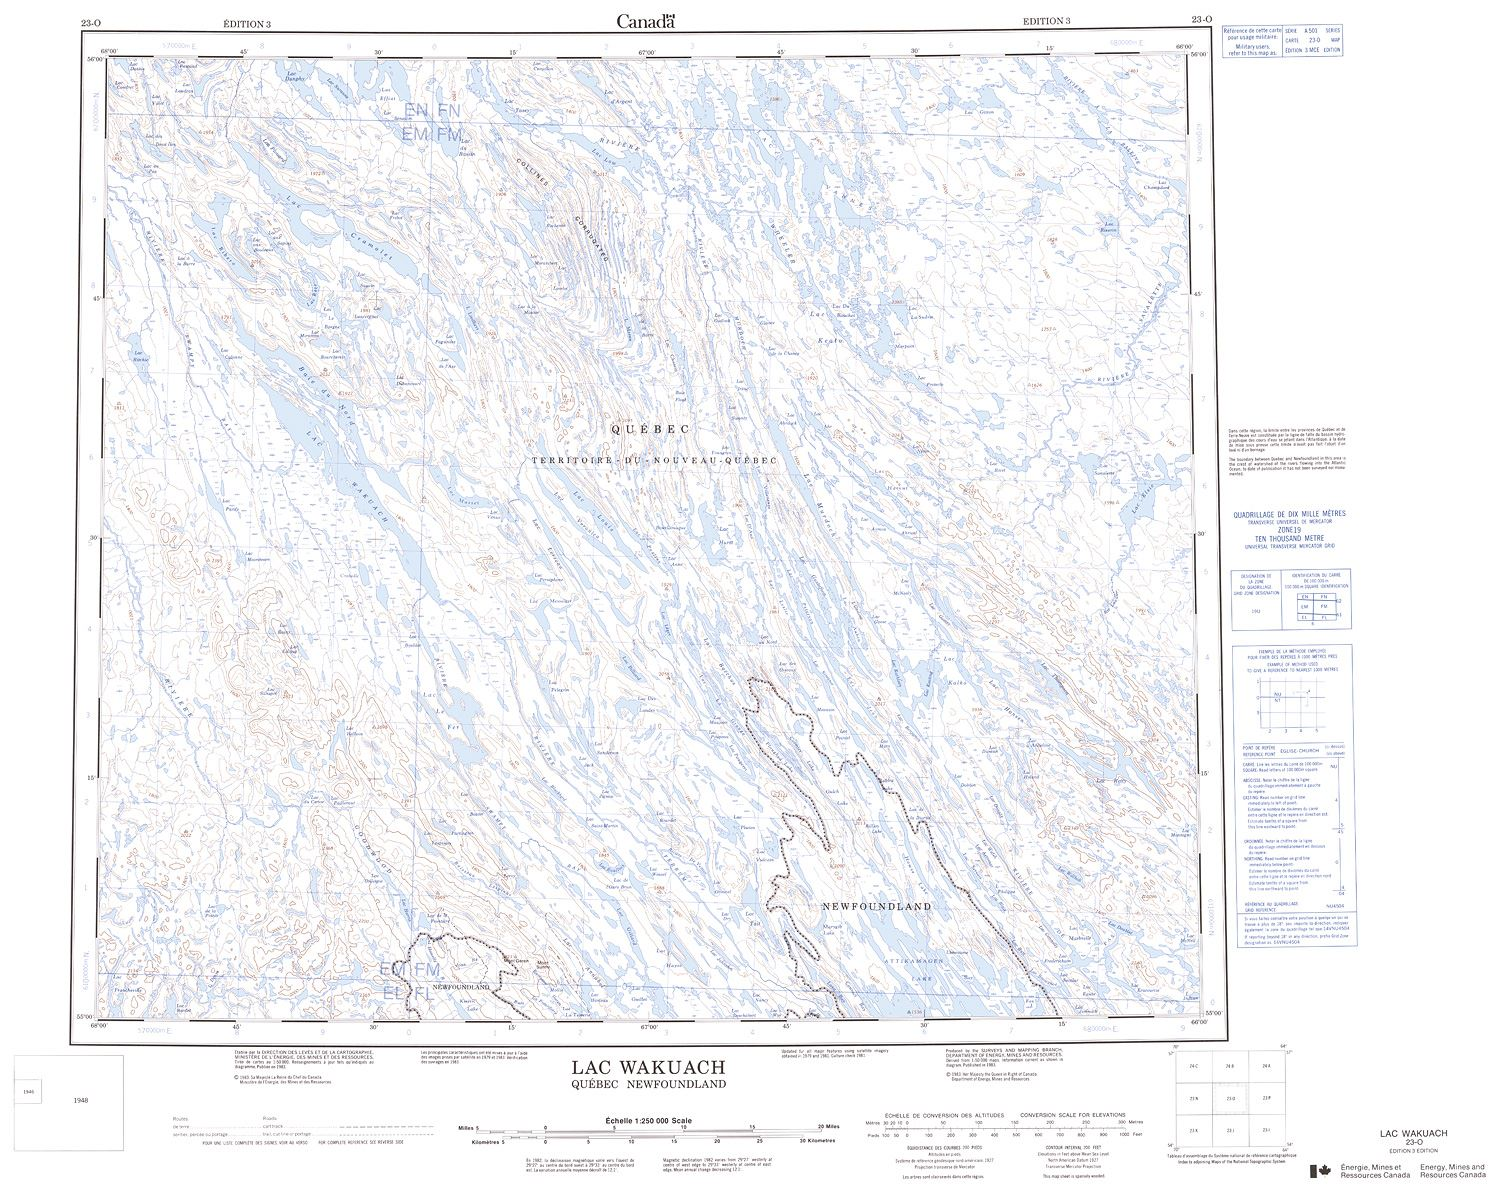 023O - LAC WAKUACH - Topographic Map